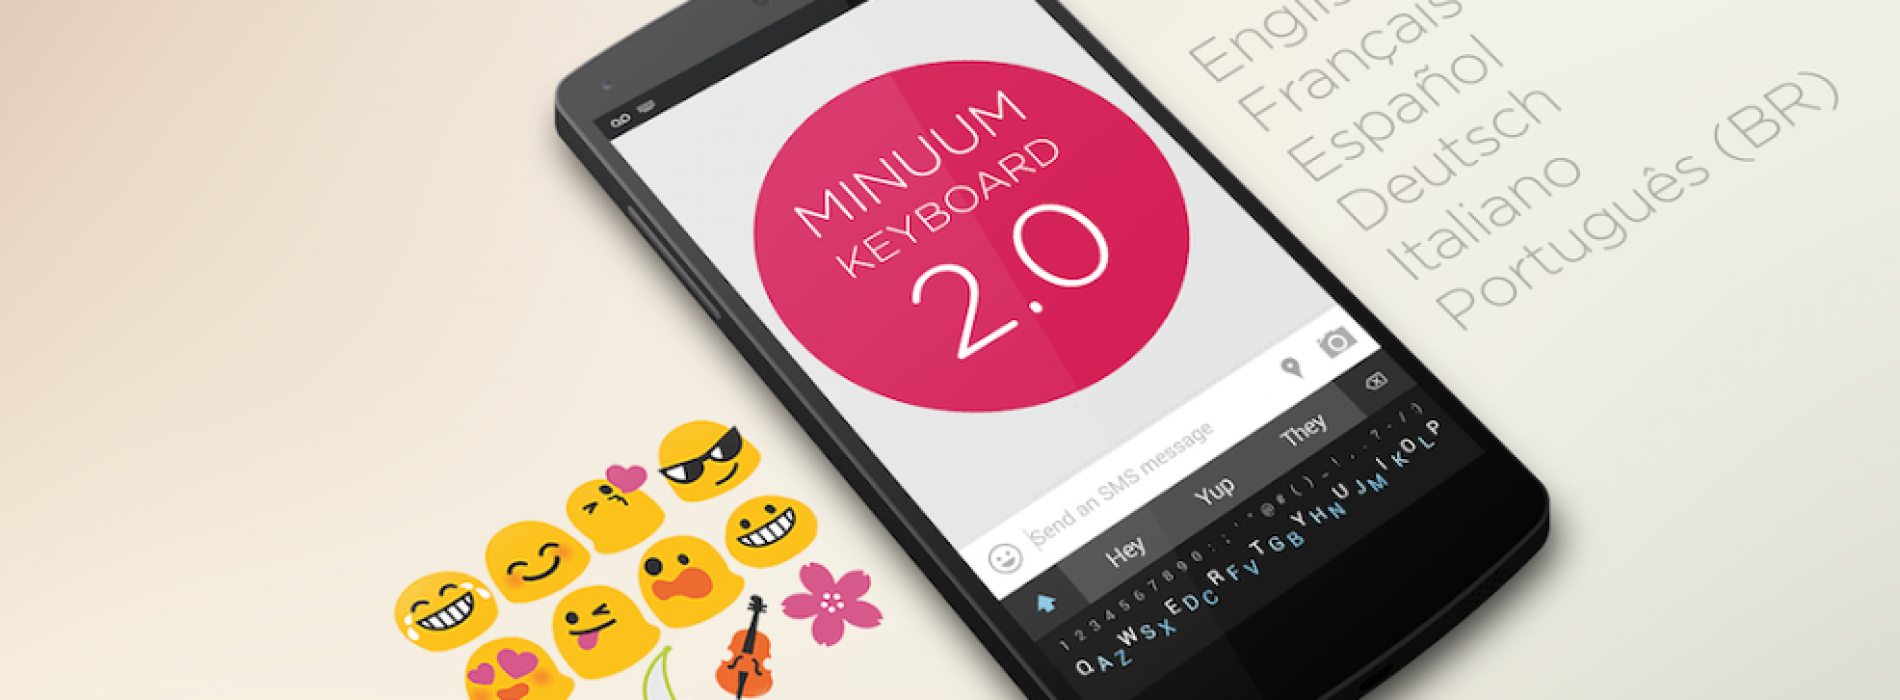 Minuum 2.0 update adds month-long free trial